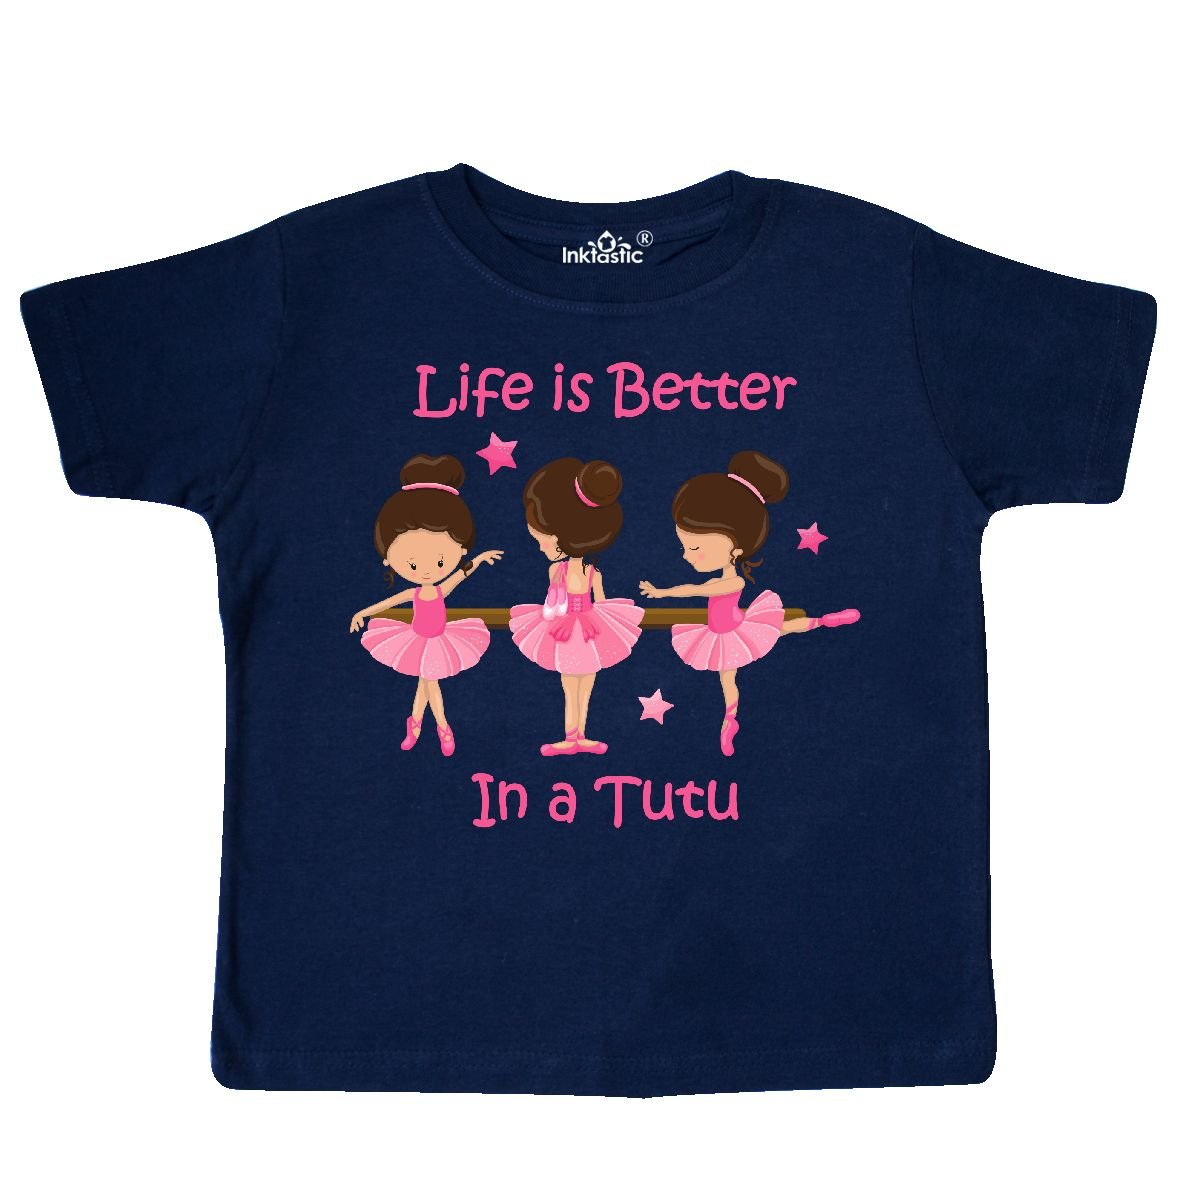 inktastic Lifes Better in a Tutu KS Toddler T-Shirt